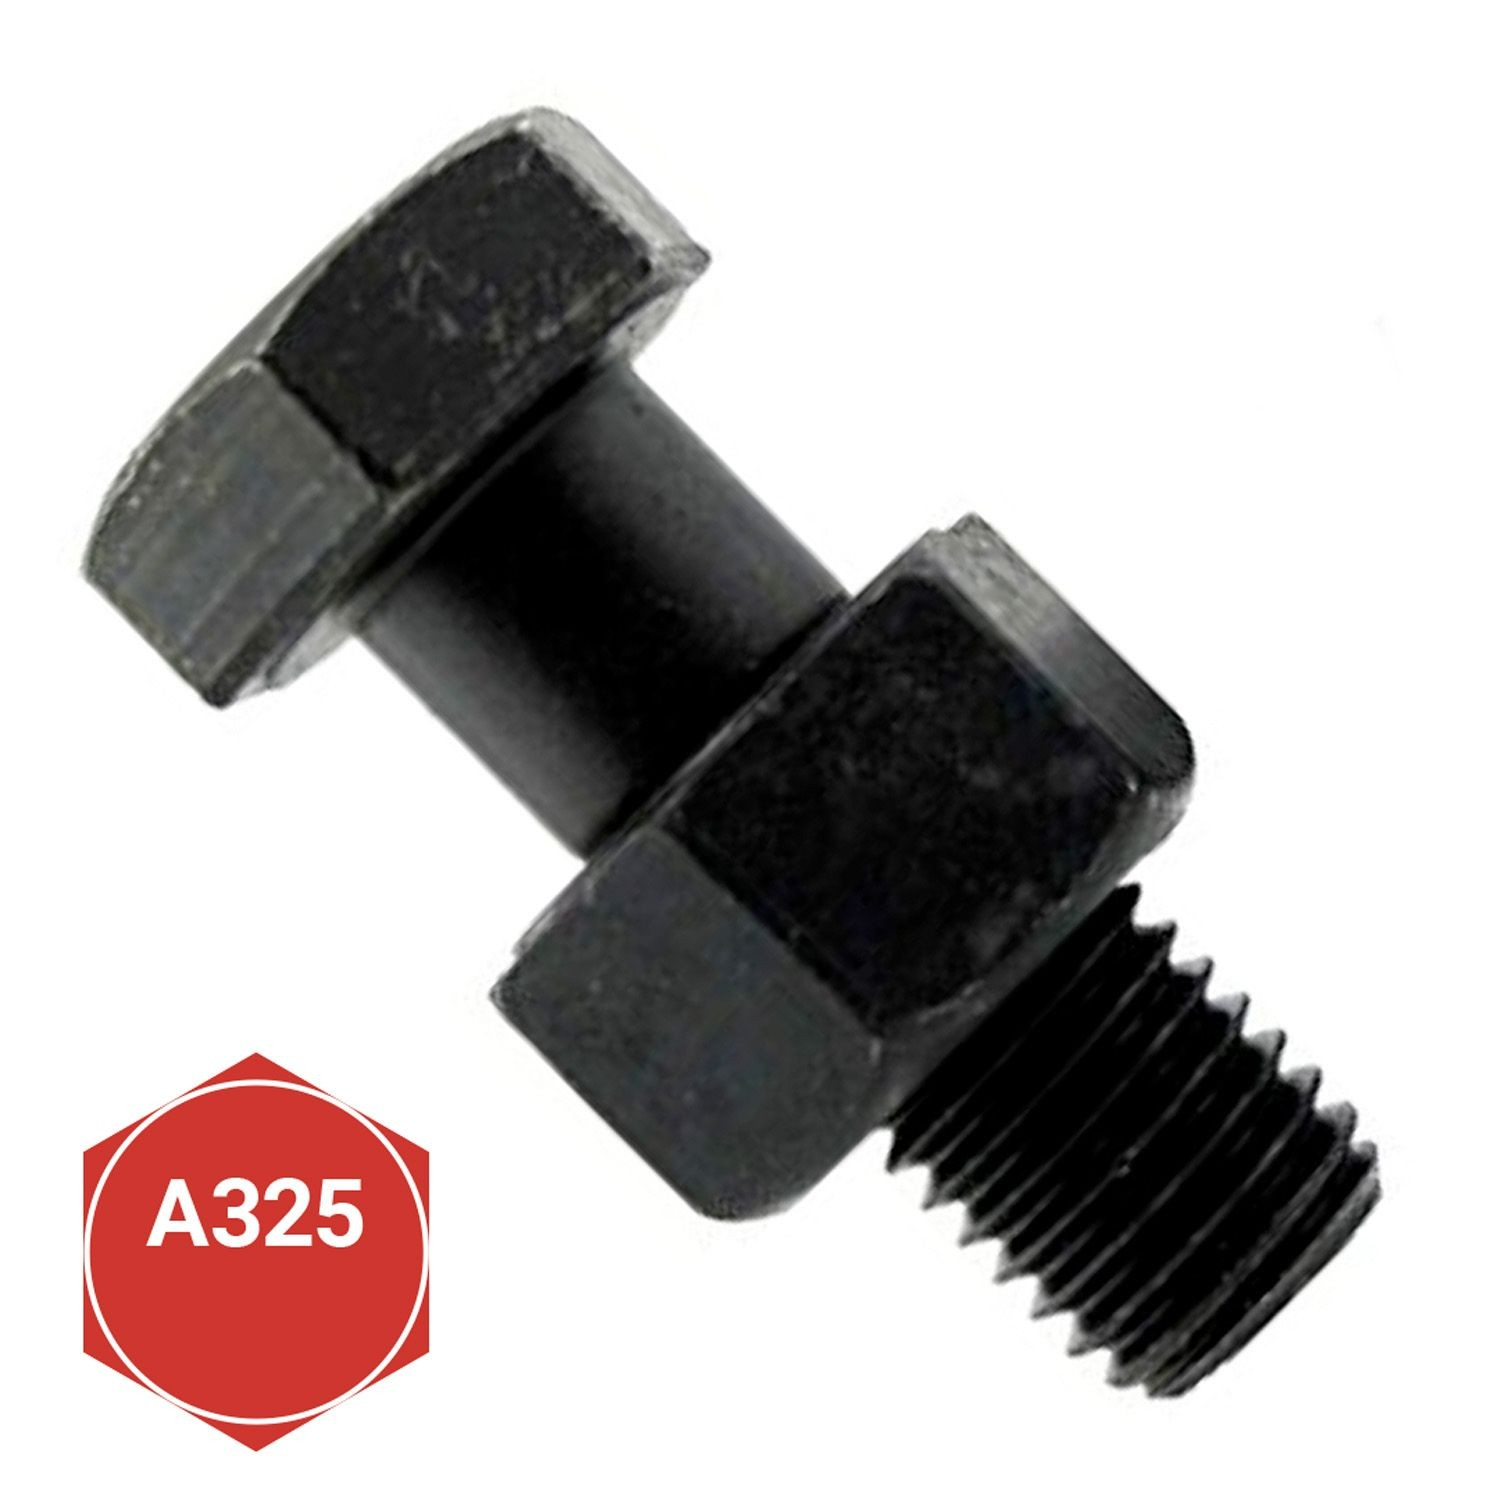 A325 Type 1 3L 400 PK 3//4-10 Steel Structural Bolt with Nut Plain Finish